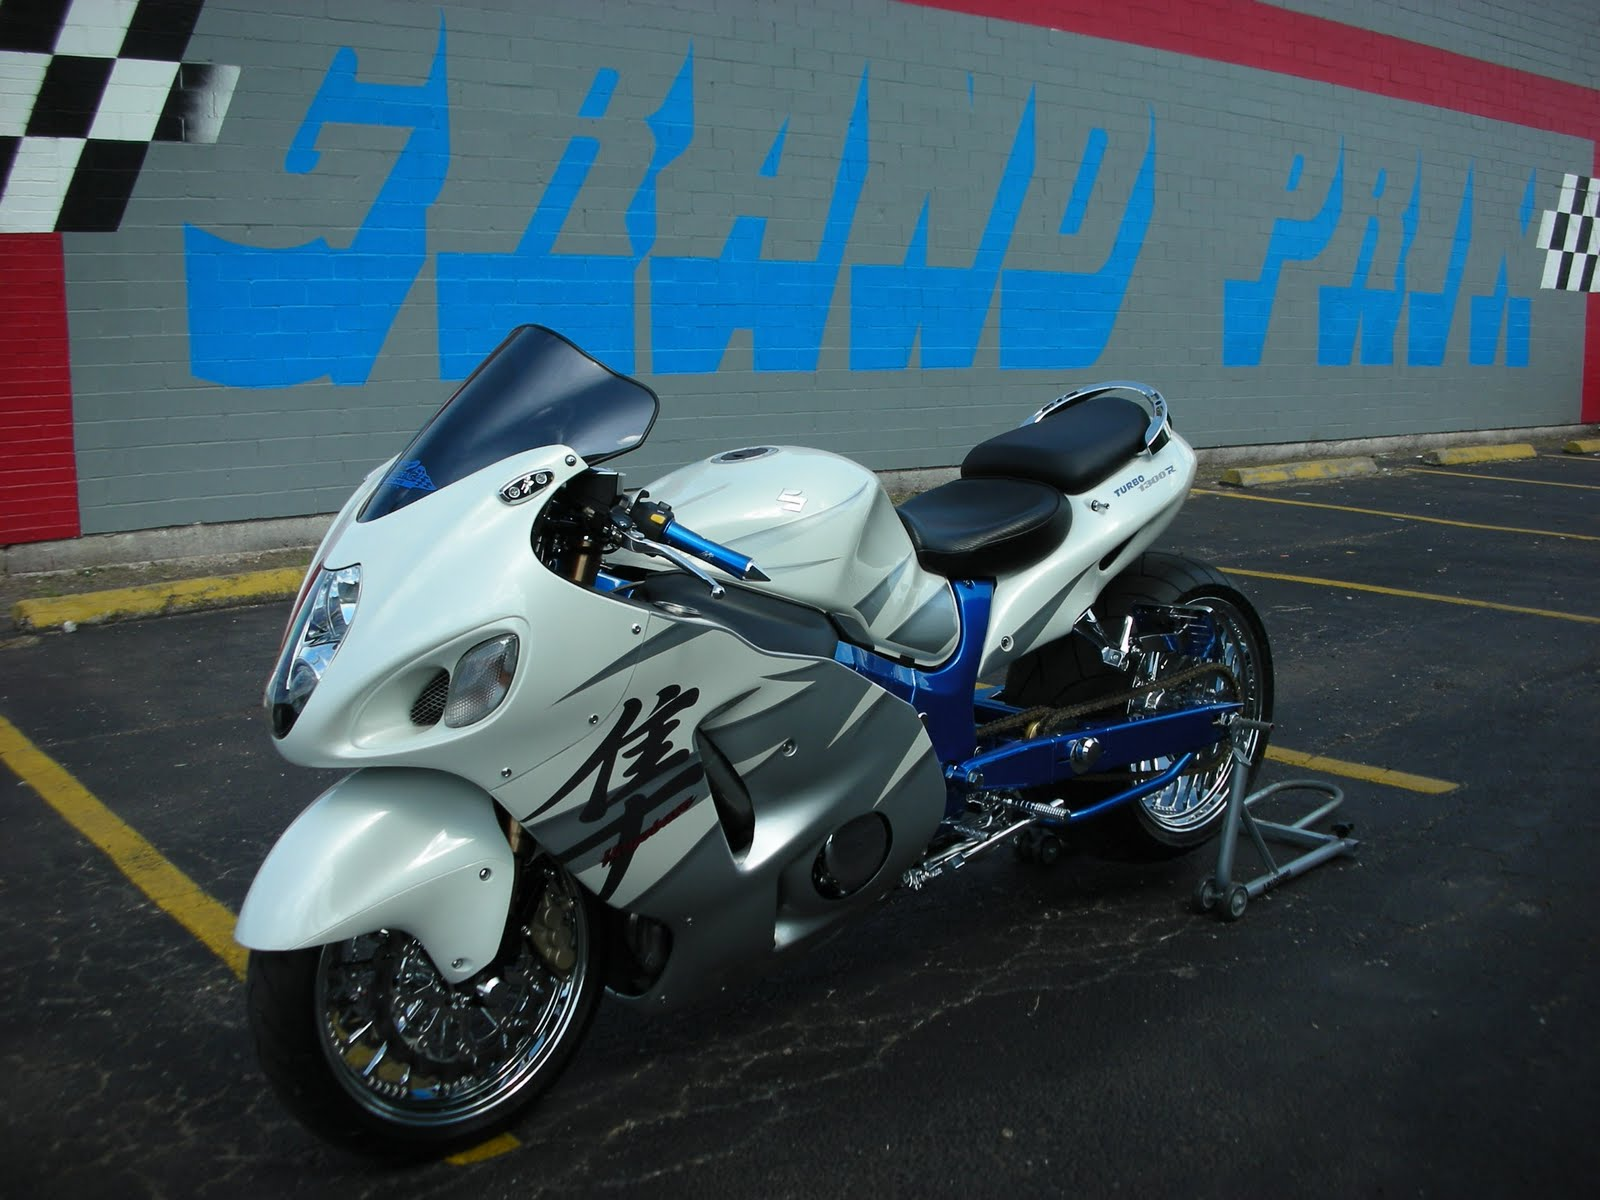 Bikes World Suzuki Hayabusa Turbo